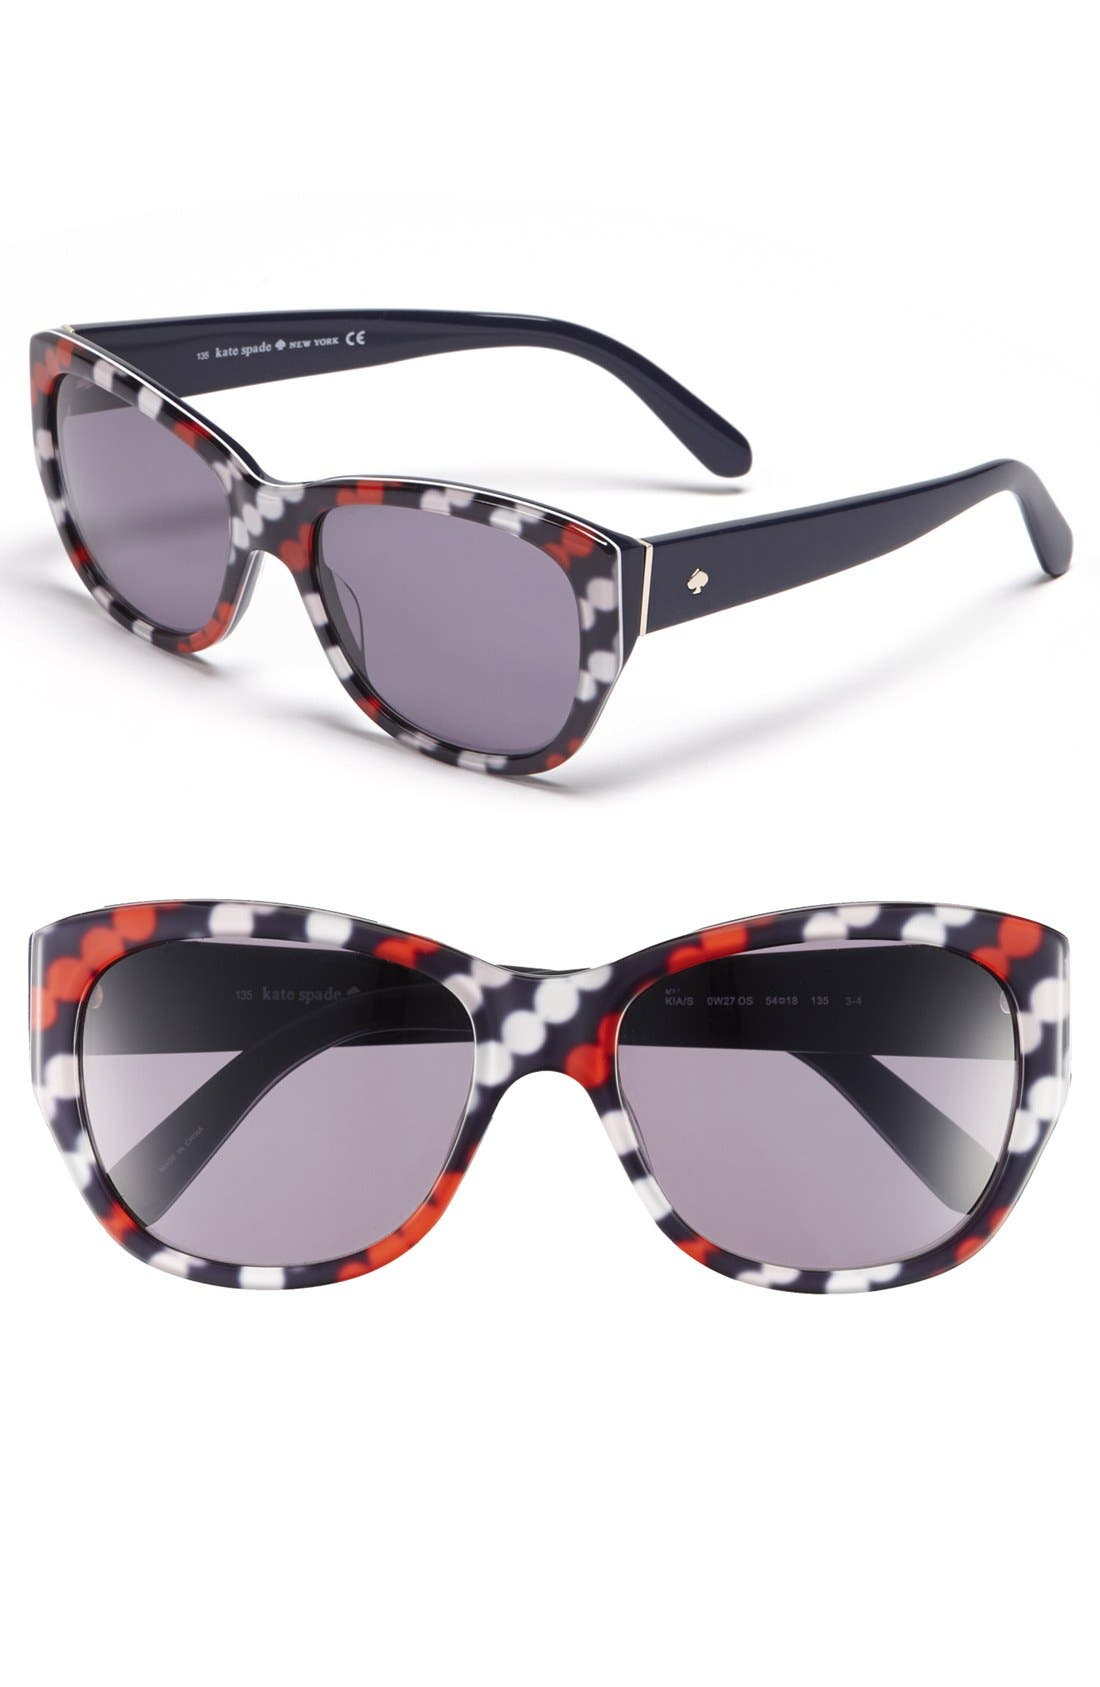 Alternate Image 1 Selected - kate spade new york 'kia' 54mm cat eye sunglasses